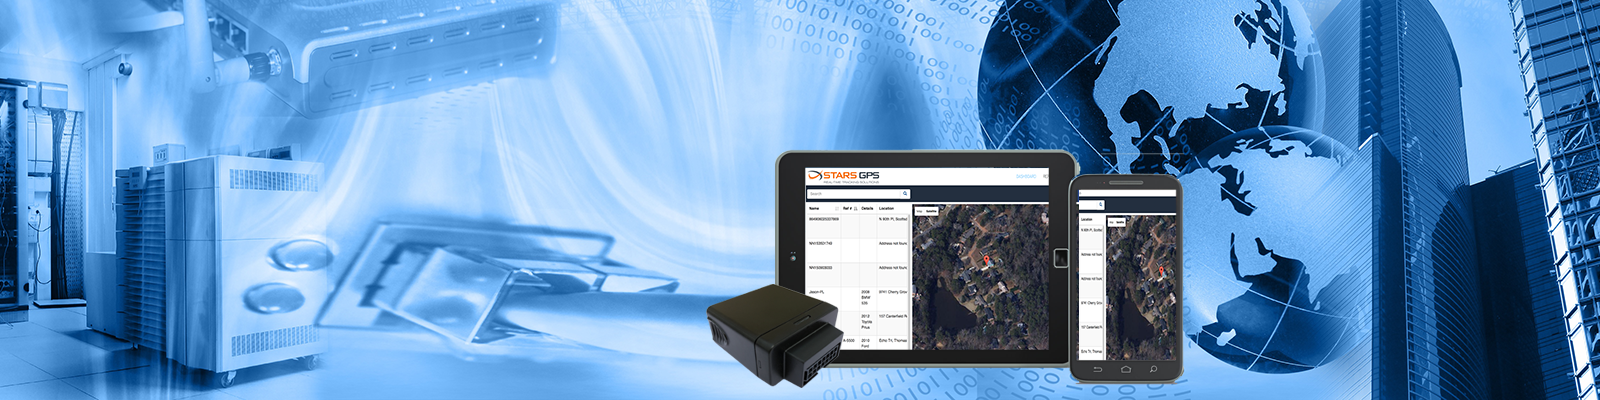 GPS Products Offered by STARS GPS